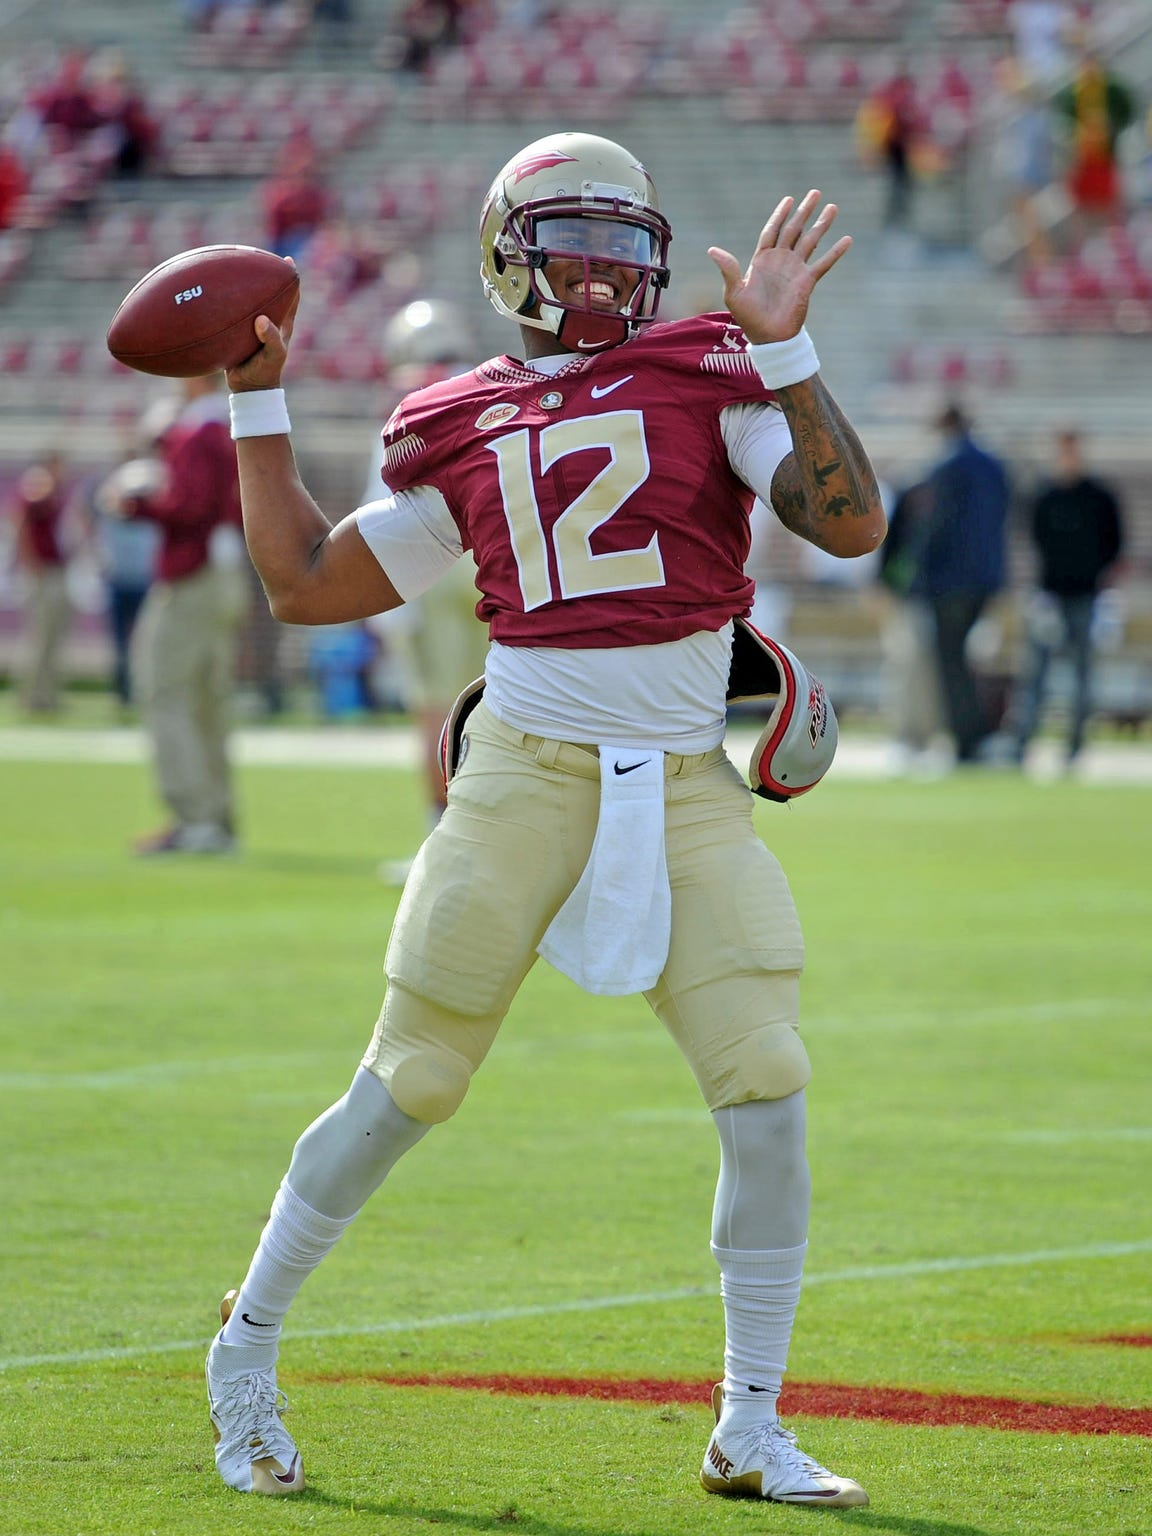 Francois is the new No. 1 for FSU after Sean Maguire went down with an injury.